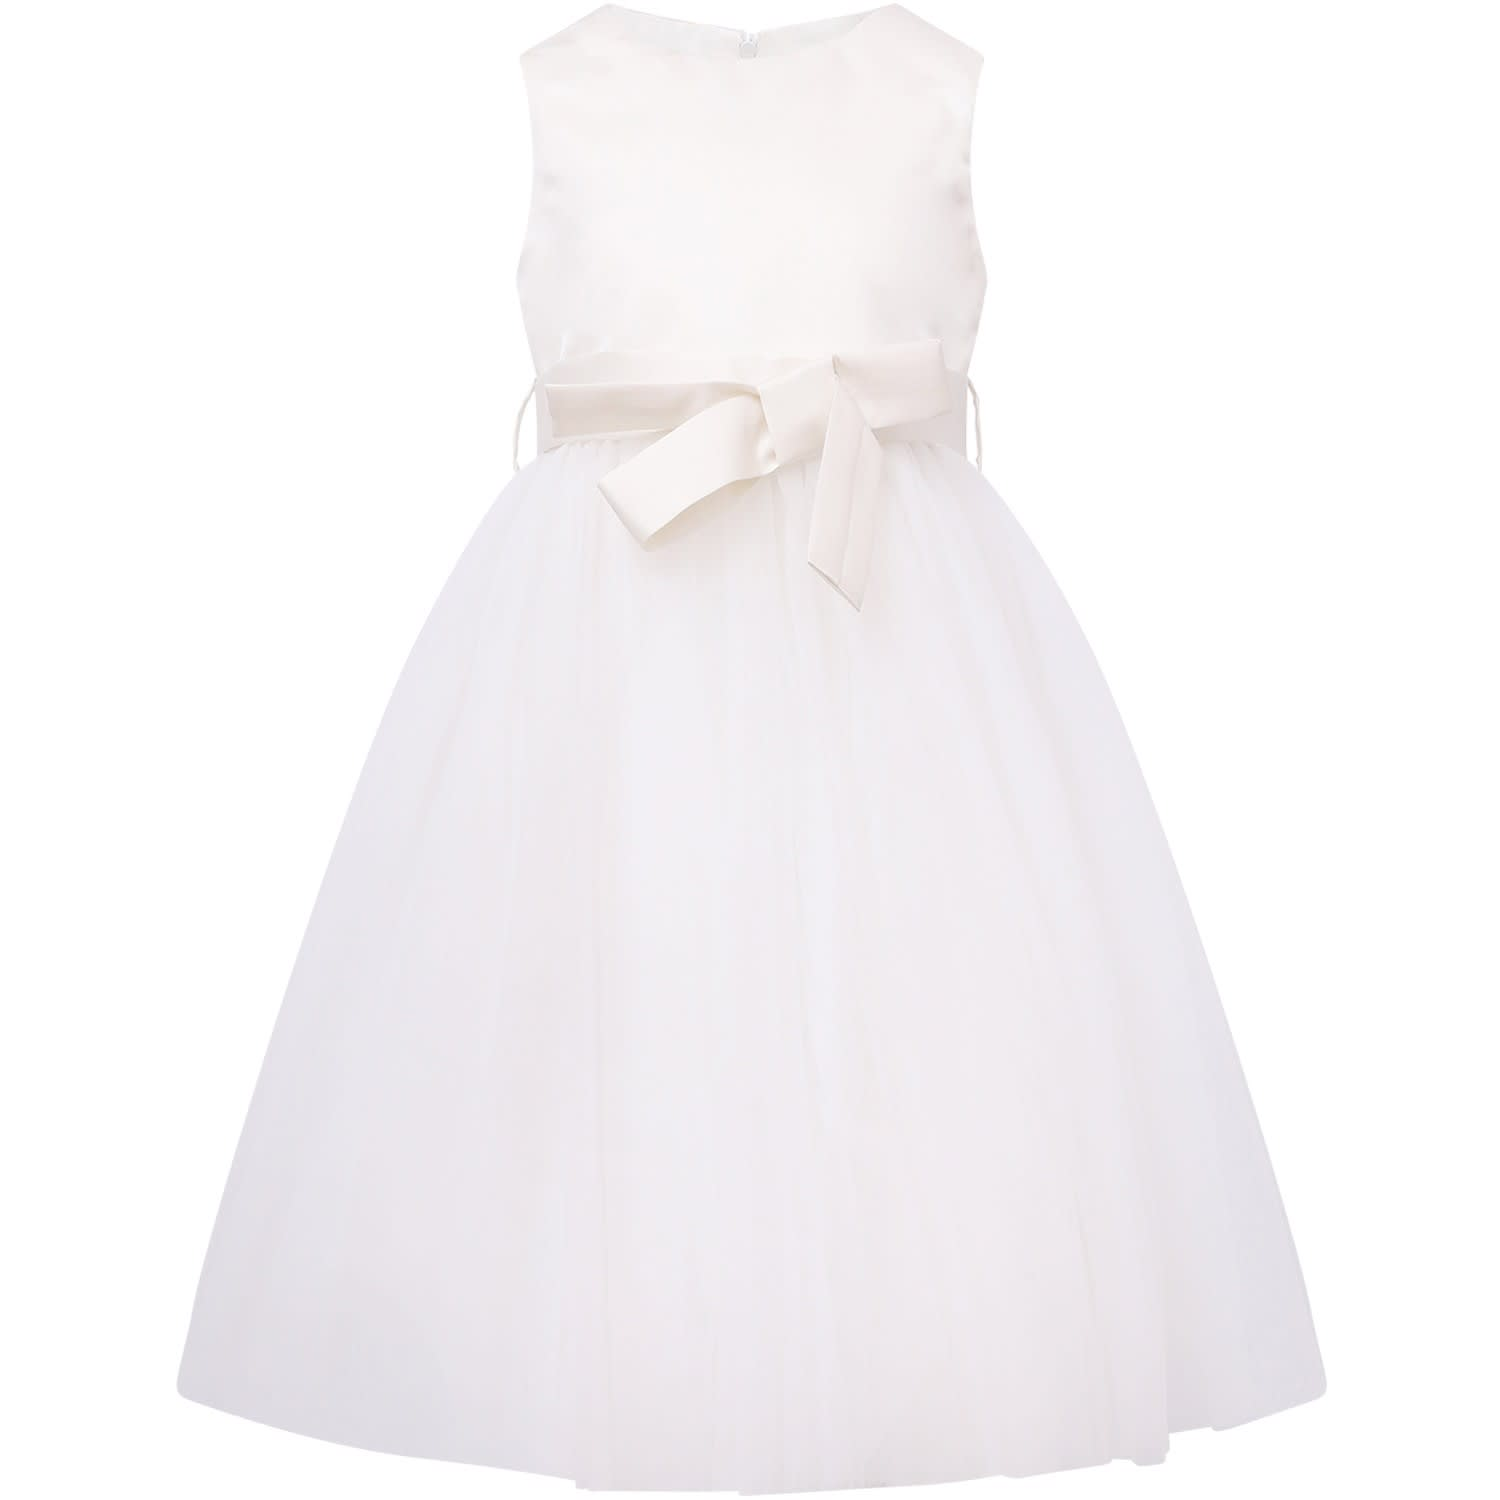 Buy Little Bear White Girl Dress With Satin Bow online, shop Little Bear with free shipping